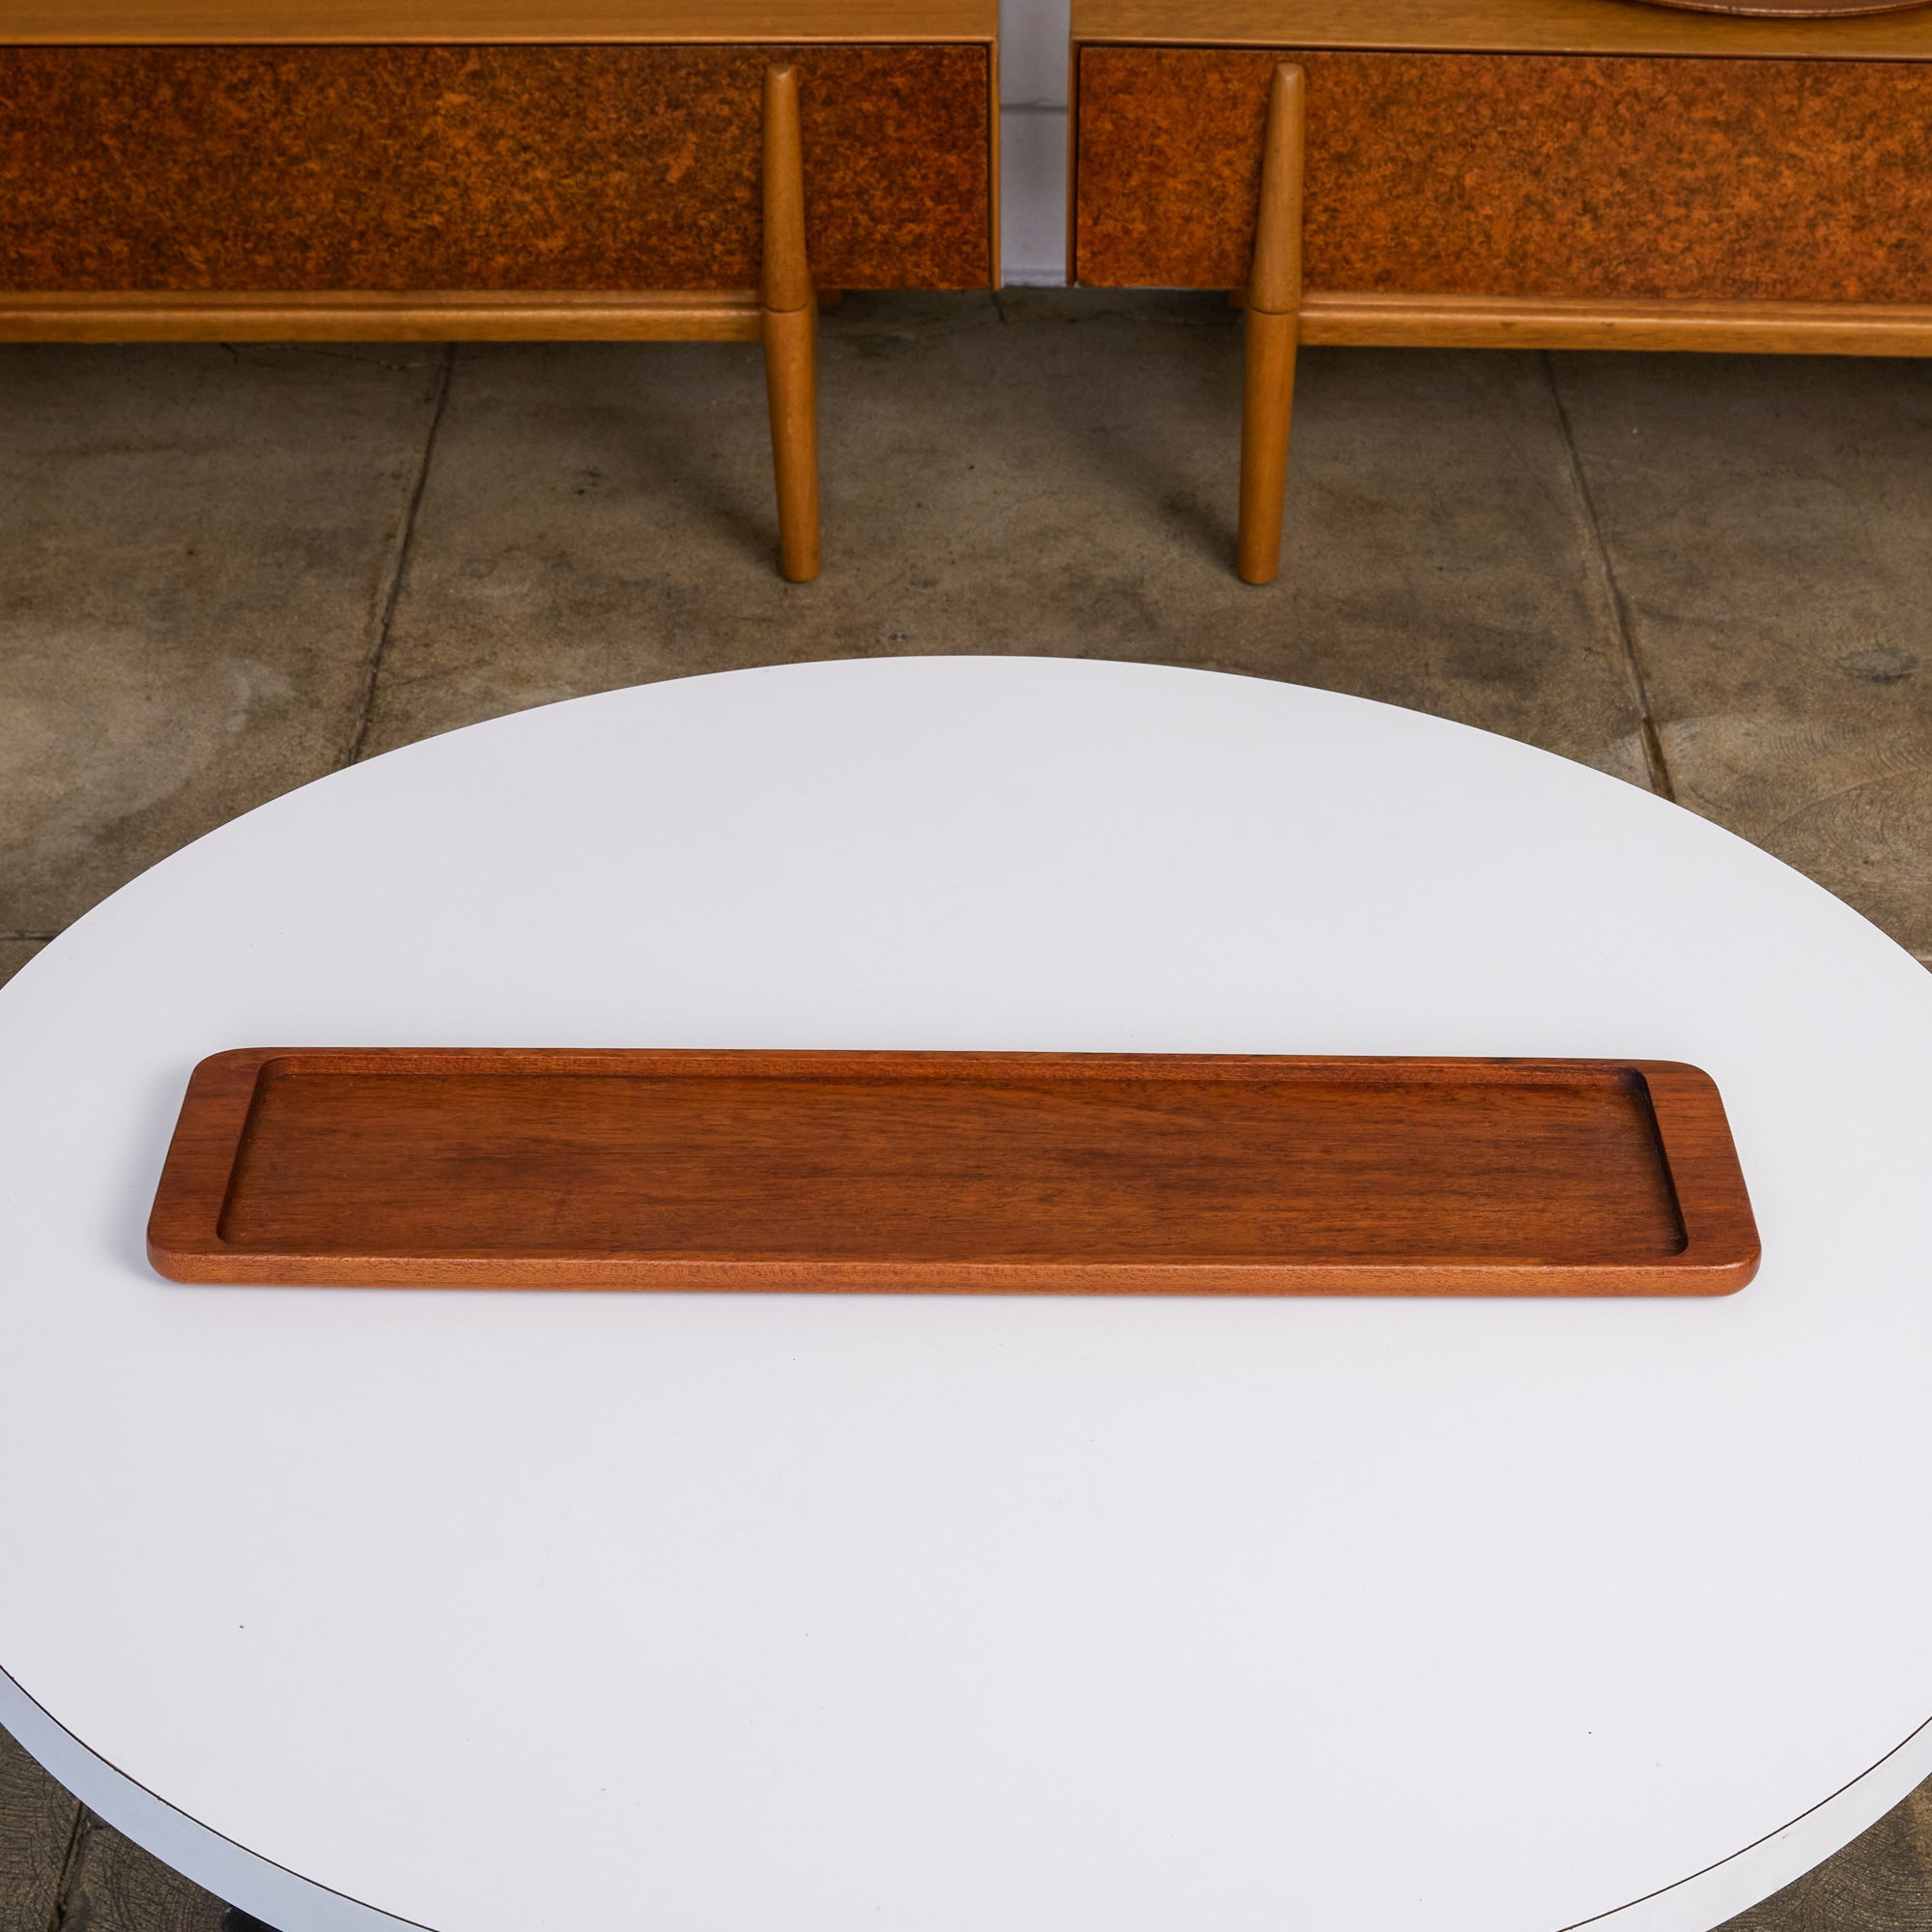 Rectangular Teak Serving Tray by ESA Denmark